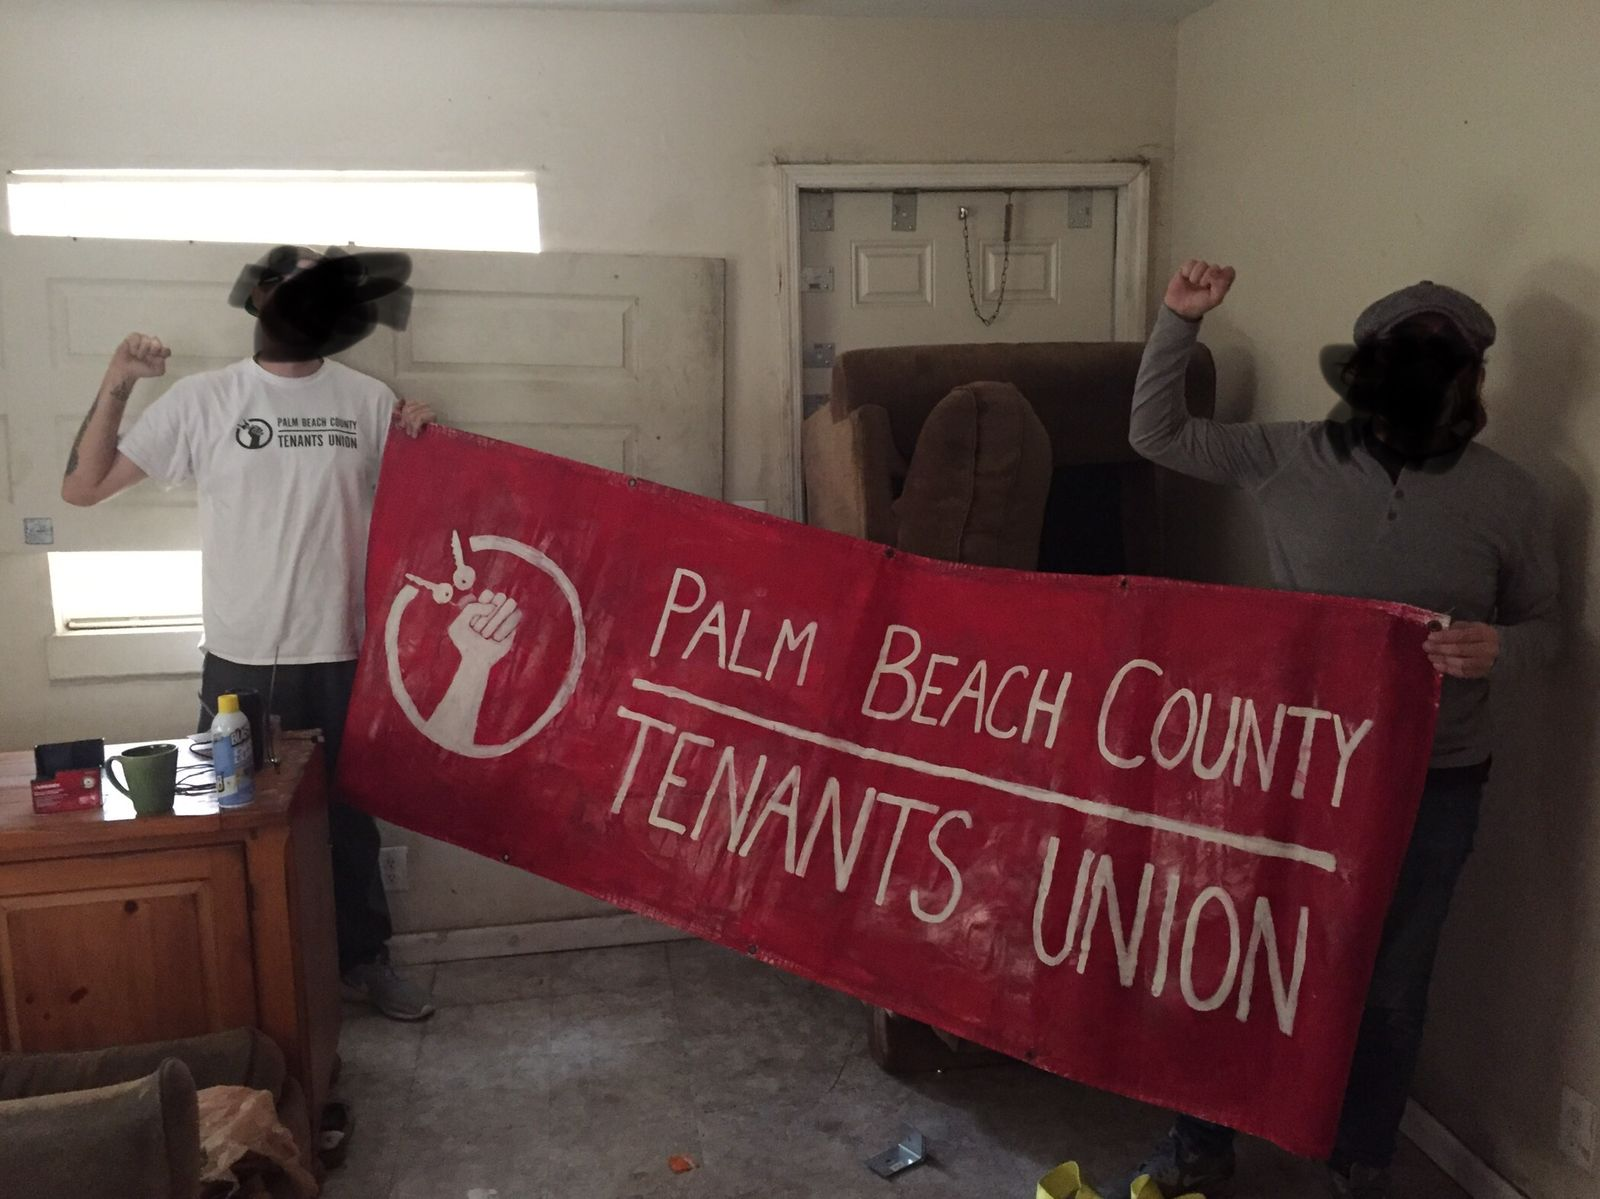 Members of the Palm Beach County Tenants Union barricaded themselves in an apartment at Stonybrook Friday afternoon ahead of evictions. (Palm Beach County Tenants Union)